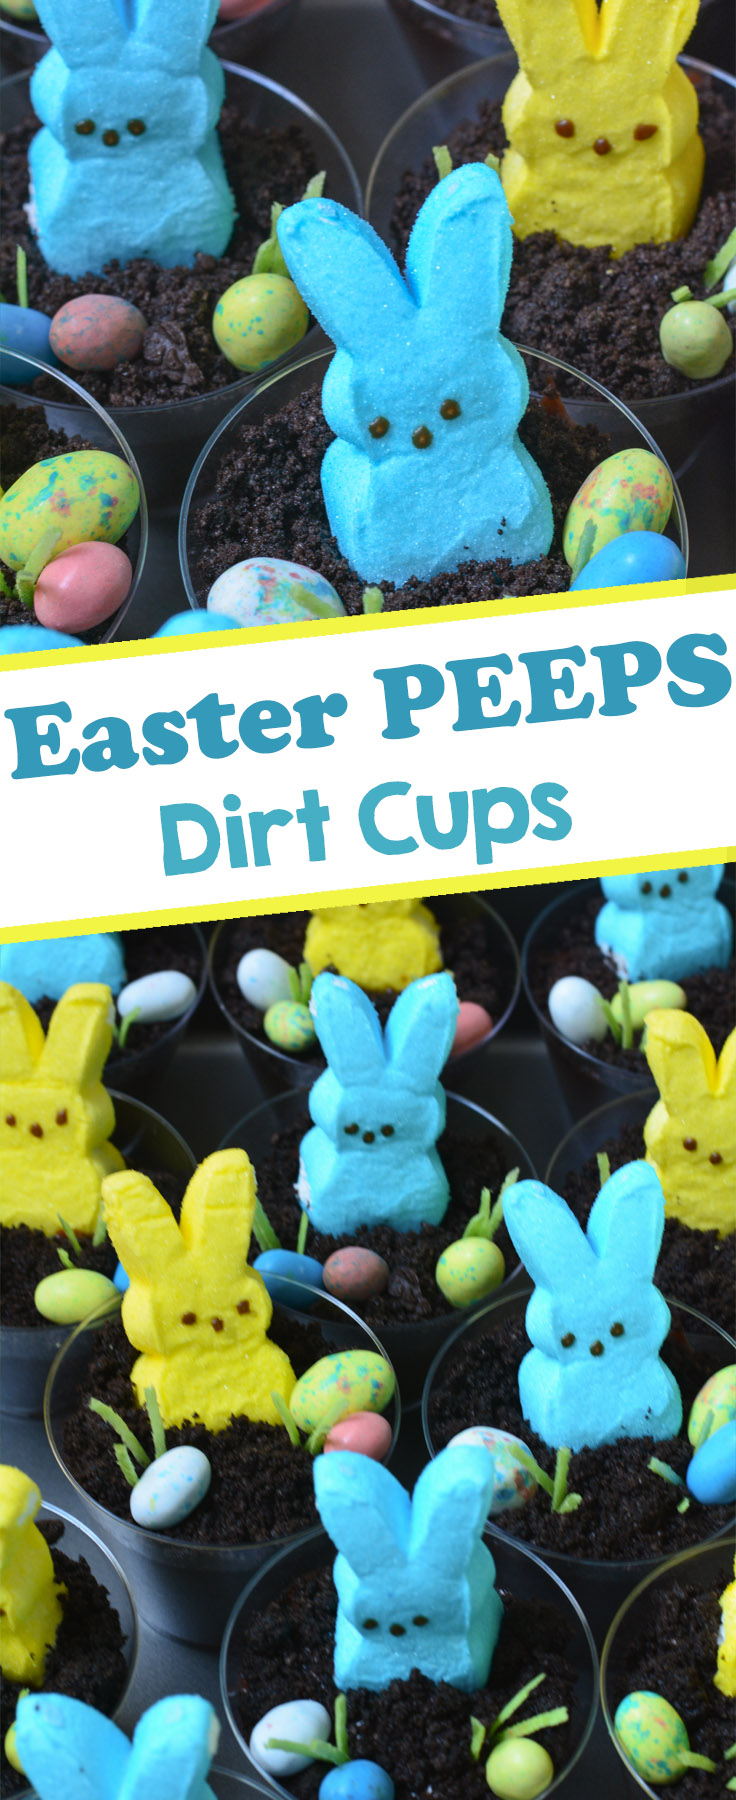 Made from layers of Oreo cookies and pudding and topped with Easter PEEPS, jelly beans, and edible grass, these Easter Bunny Dirt Cups are a fun and easy Easter treat that every bunny will love!